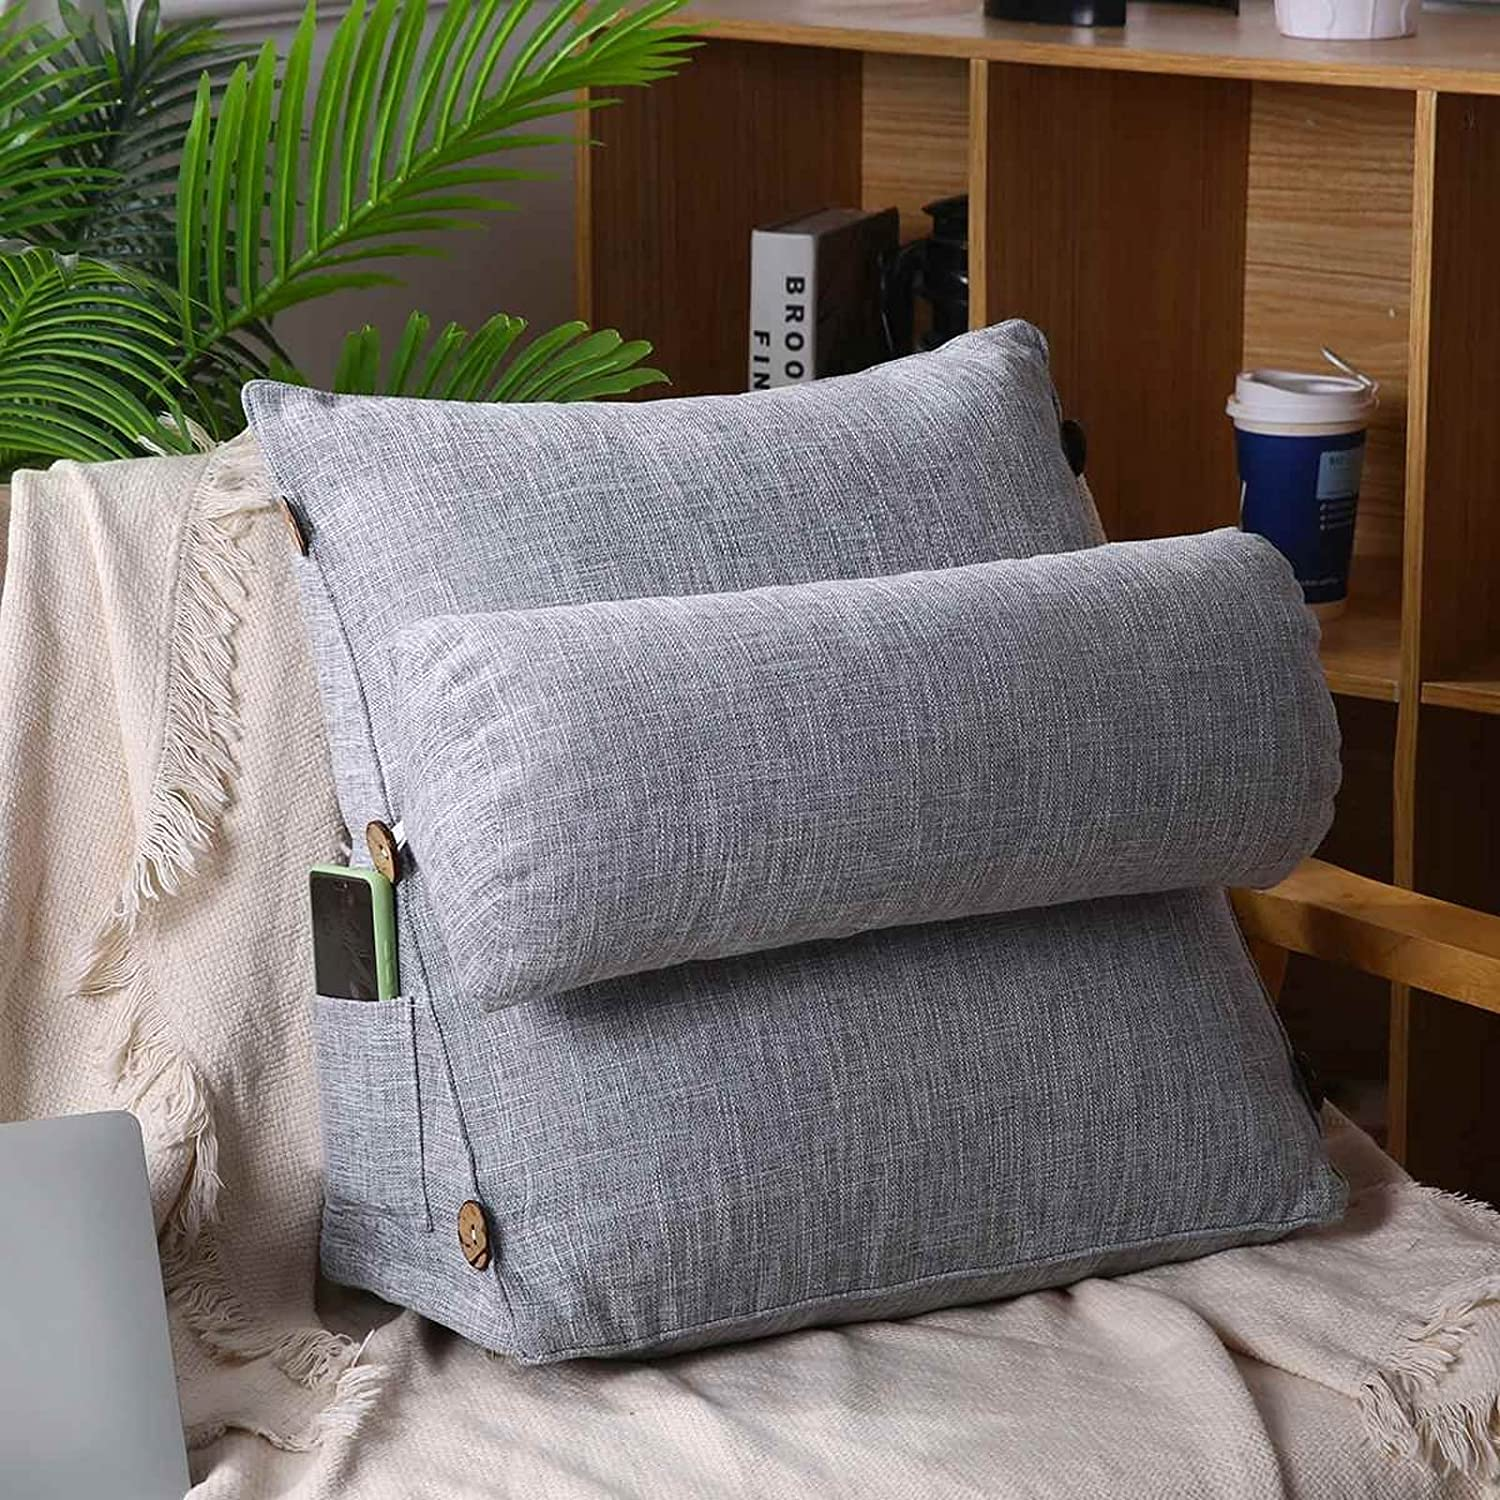 Wedge Back Pillow Triangle Cushion Rest Sleep Sofa Home Bed 35% OFF Neck Super popular specialty store